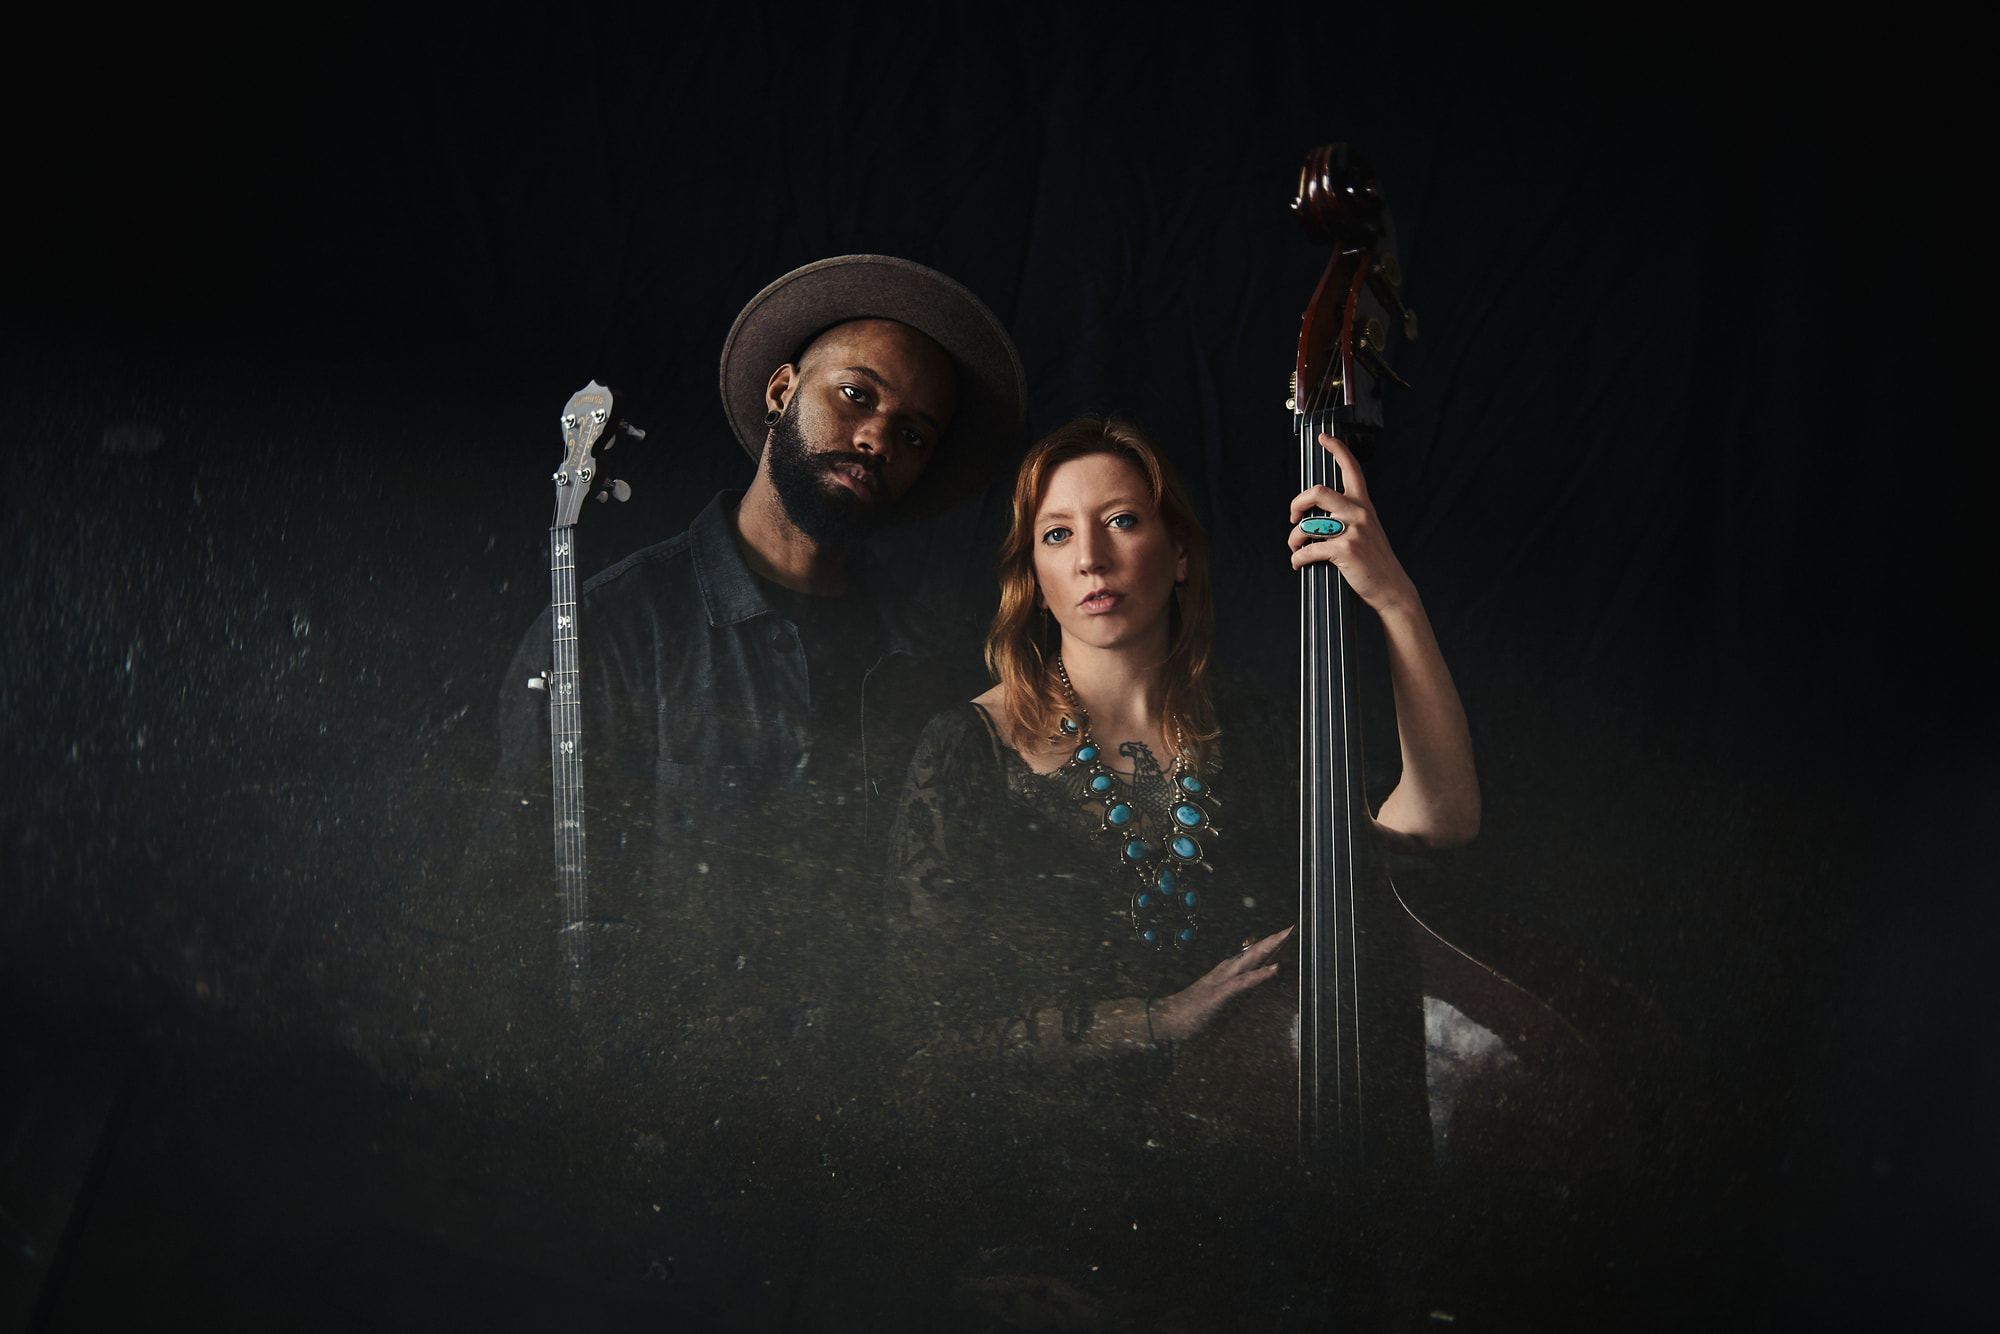 man with banjo and woman with bass. photo by Kat Schleicher